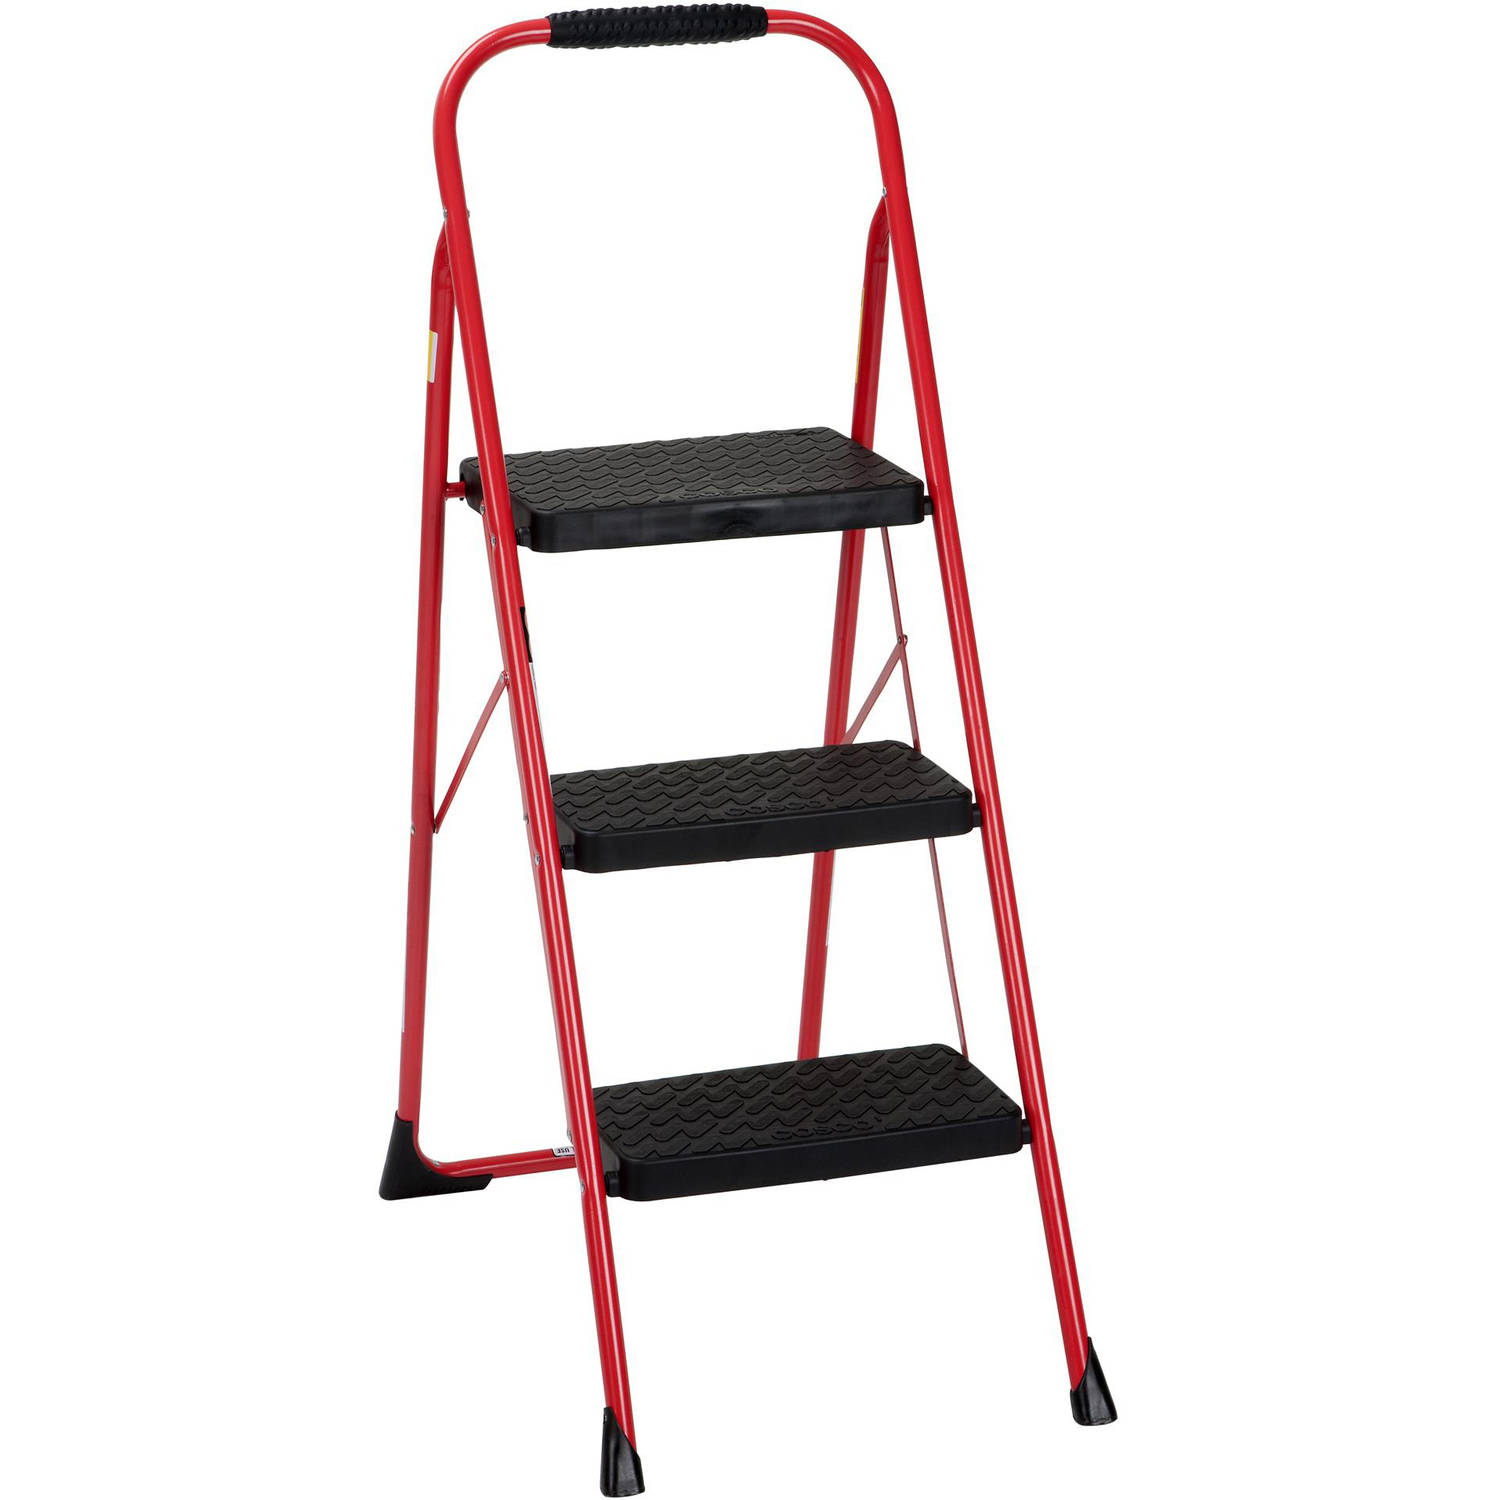 Cosco Three Step Big Step Folding Step Stool With Rubber